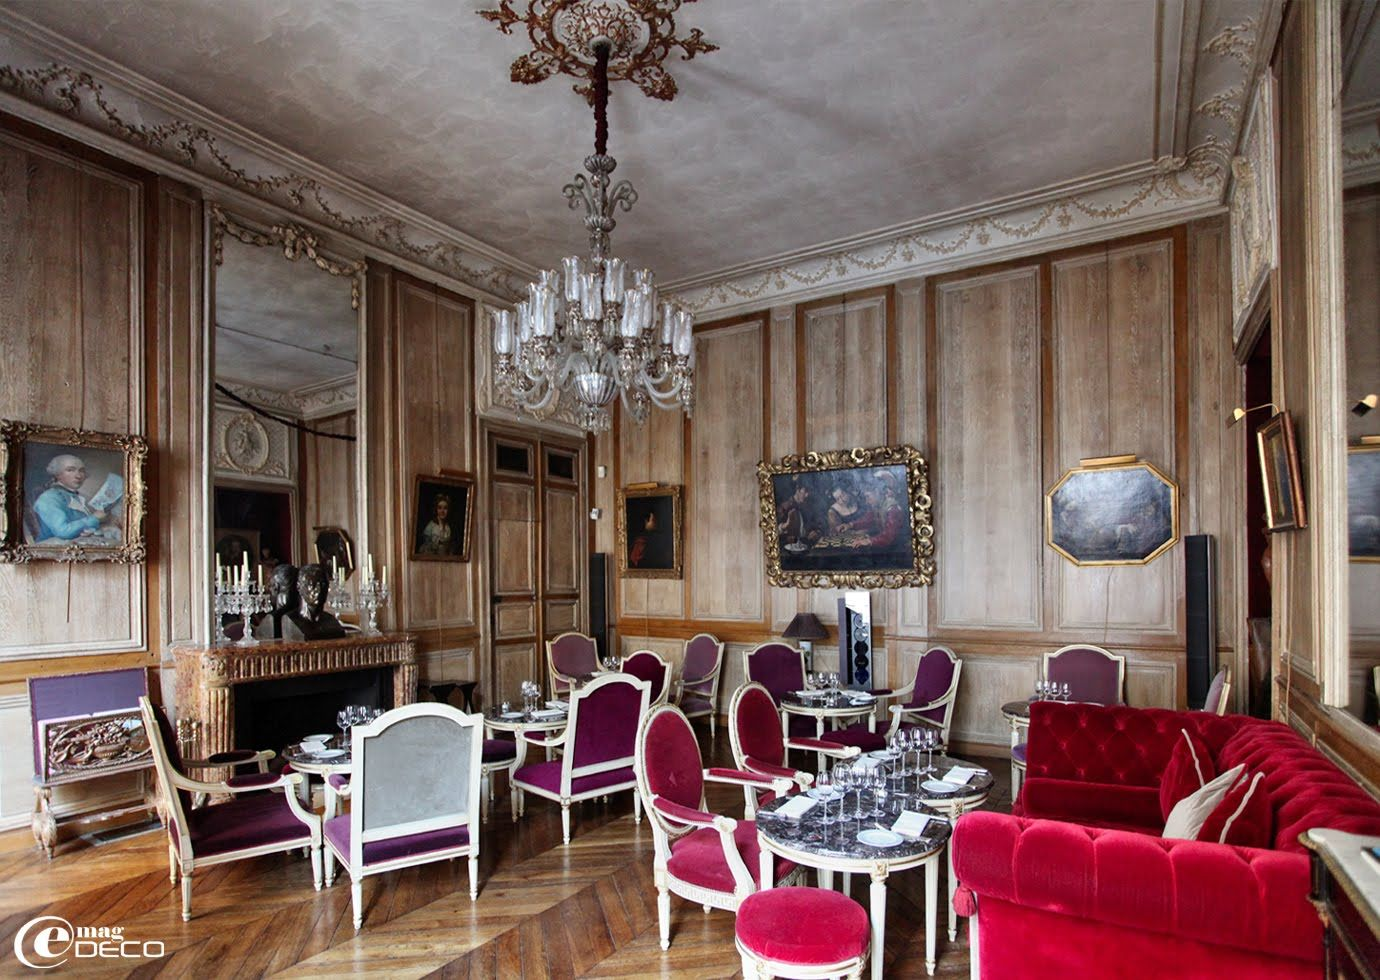 Le salon de musique d cor sous louis xvi restaurant for Salon louis 16